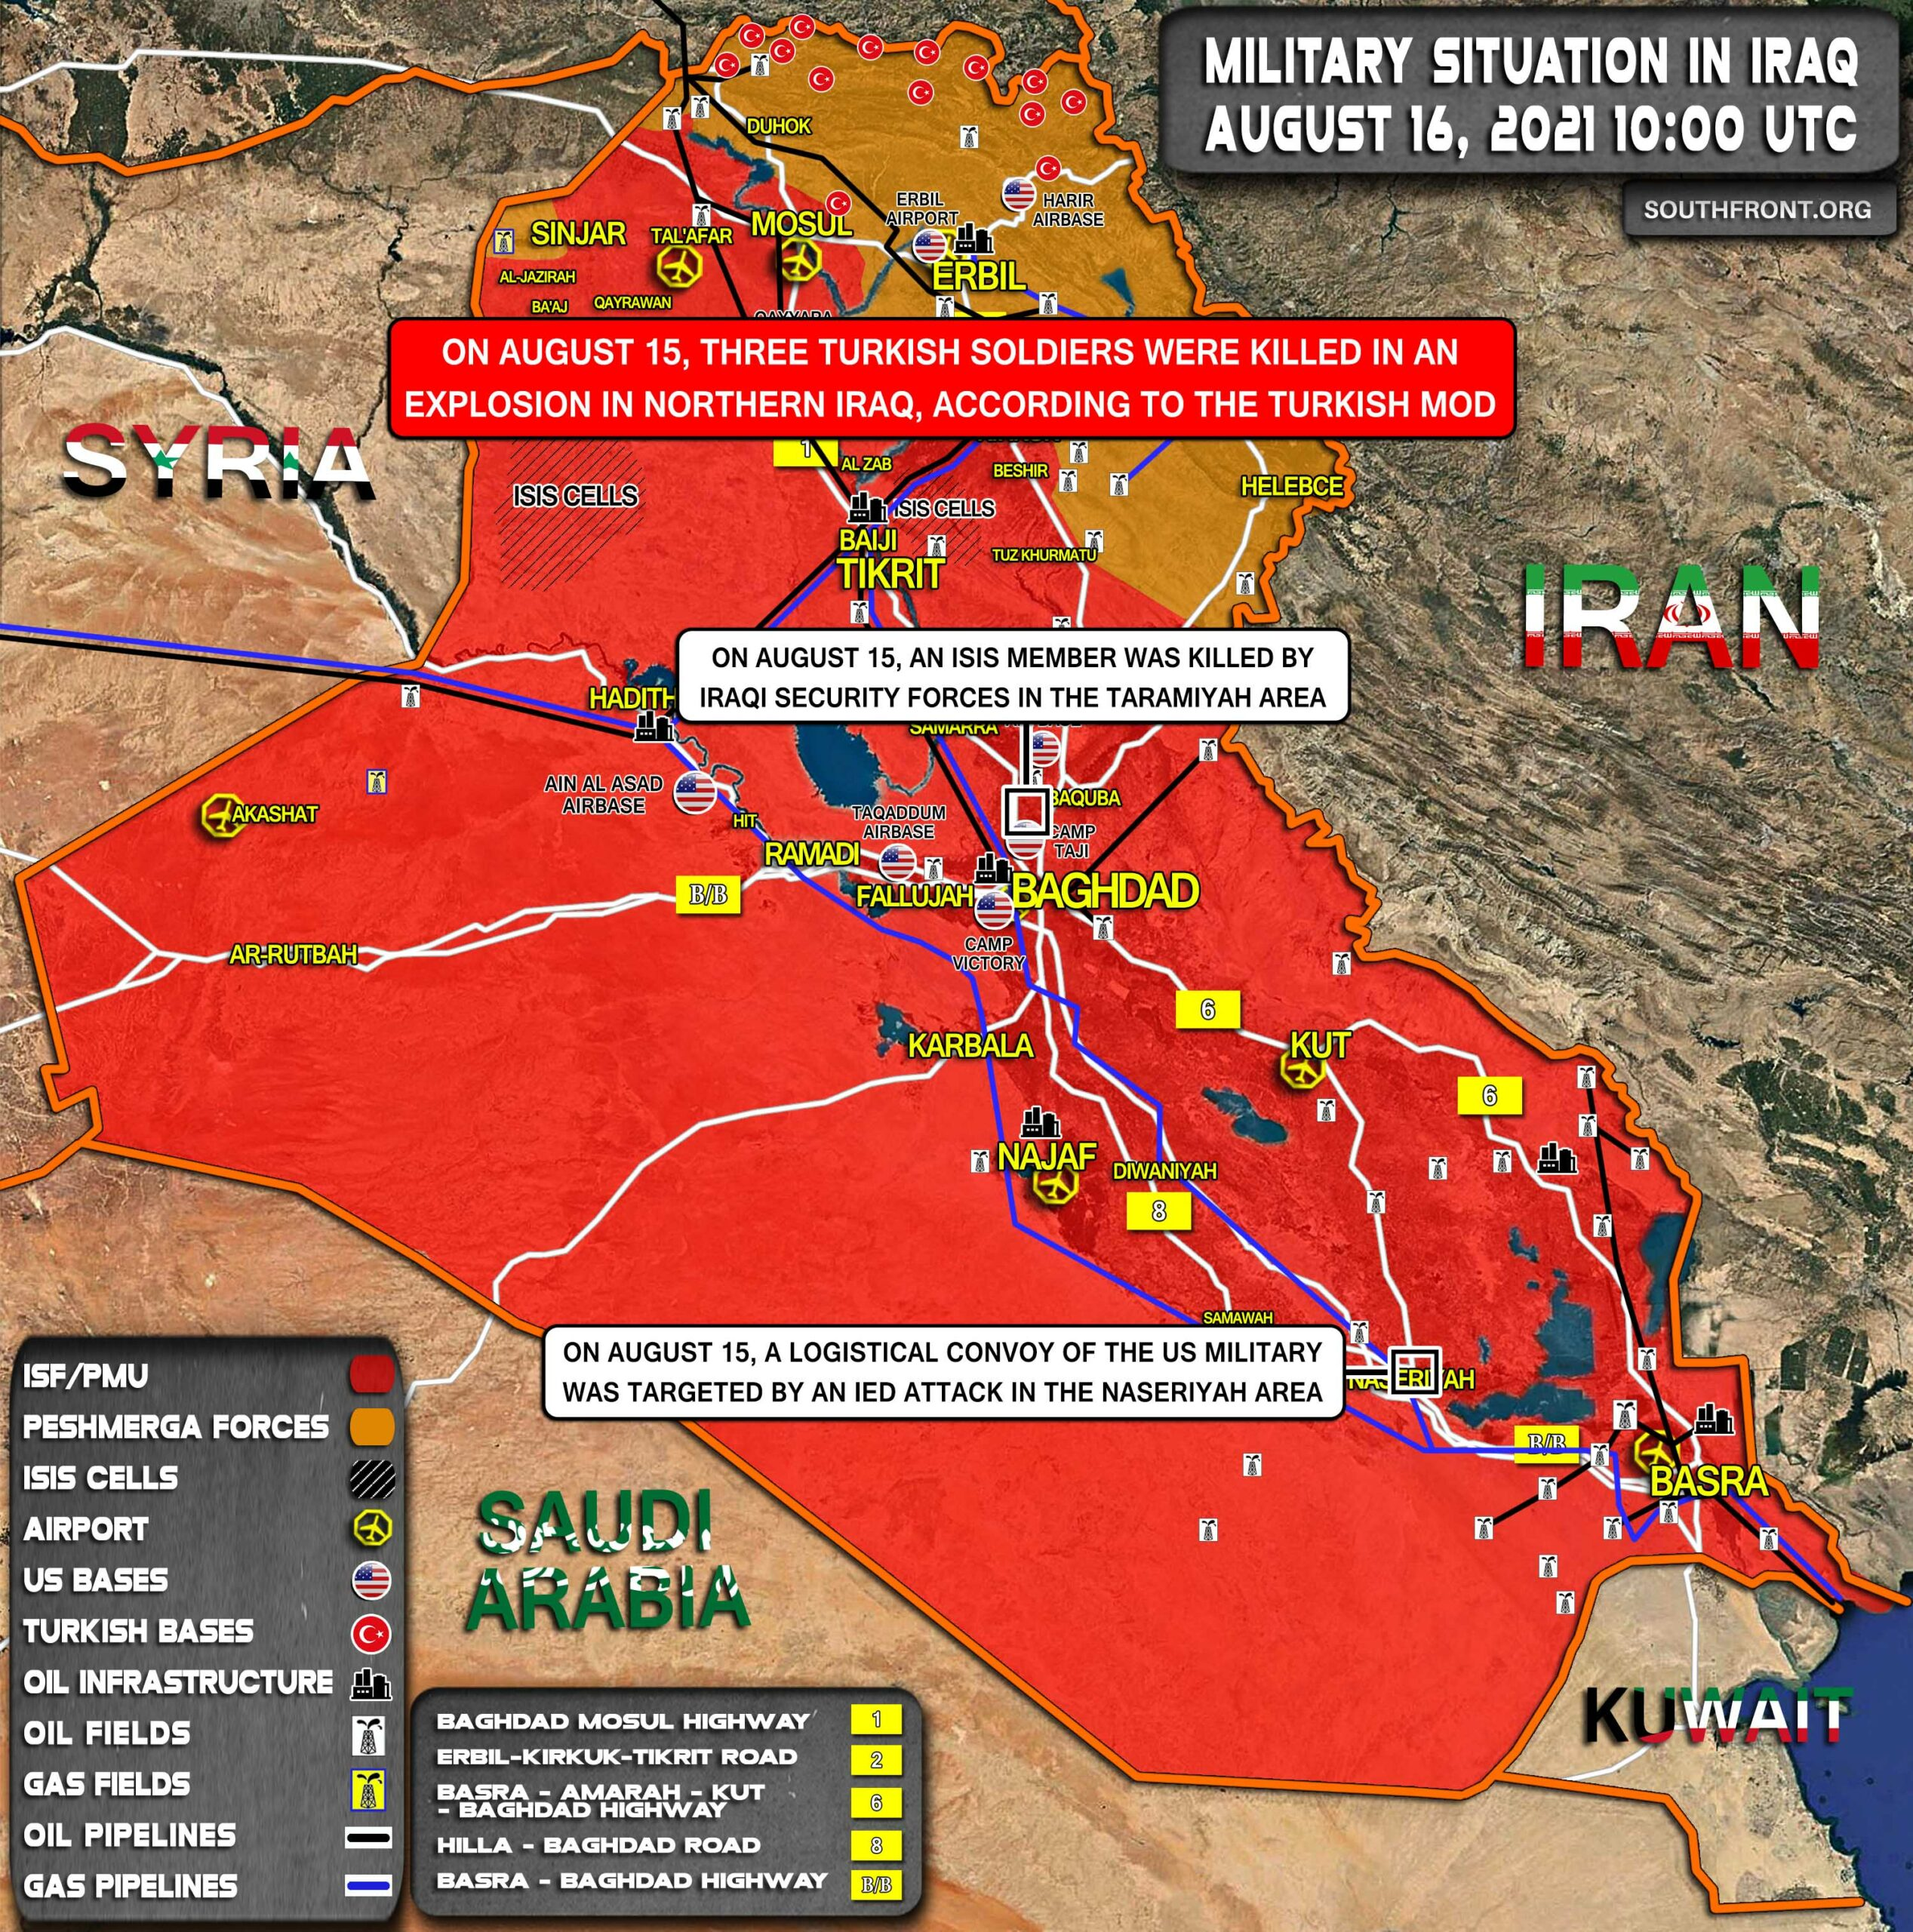 Military Situation In Iraq On August 16, 2021 (Map Update)